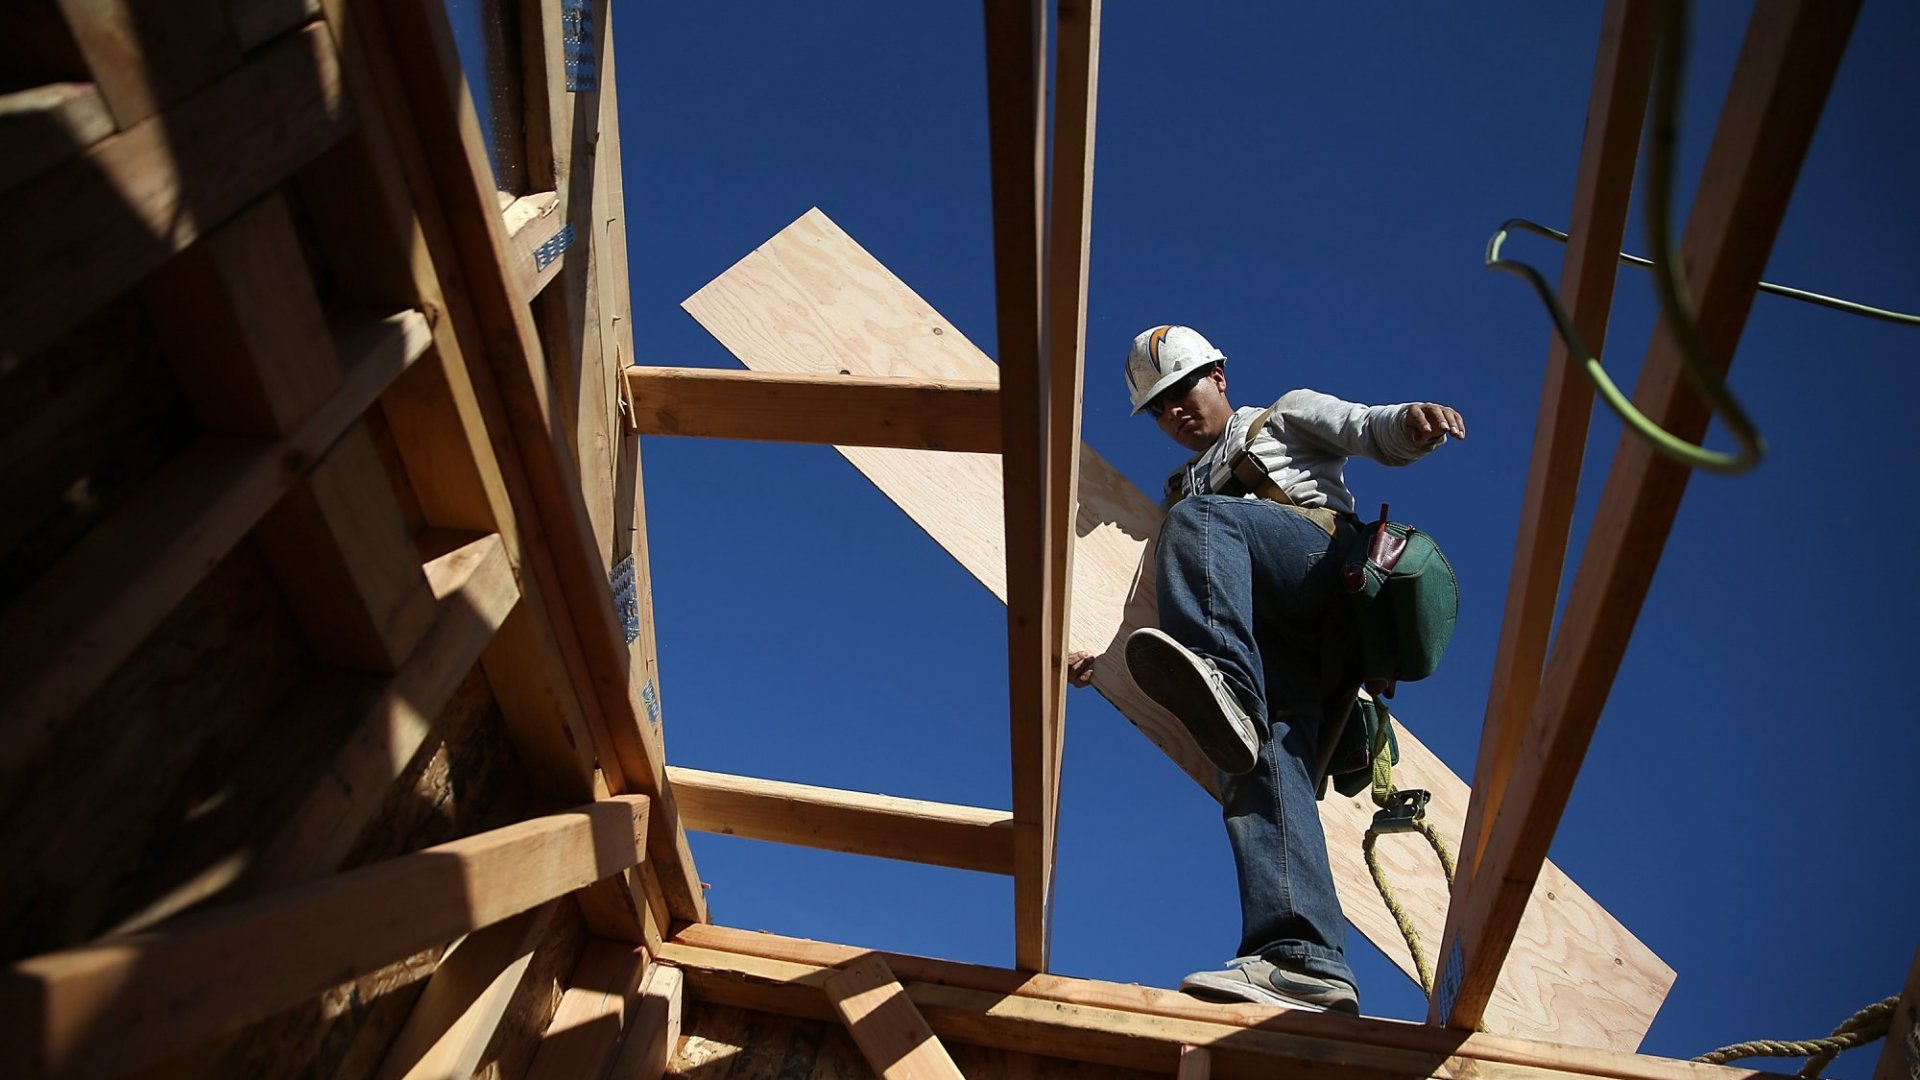 Construction Companies Struggle to Find Workers